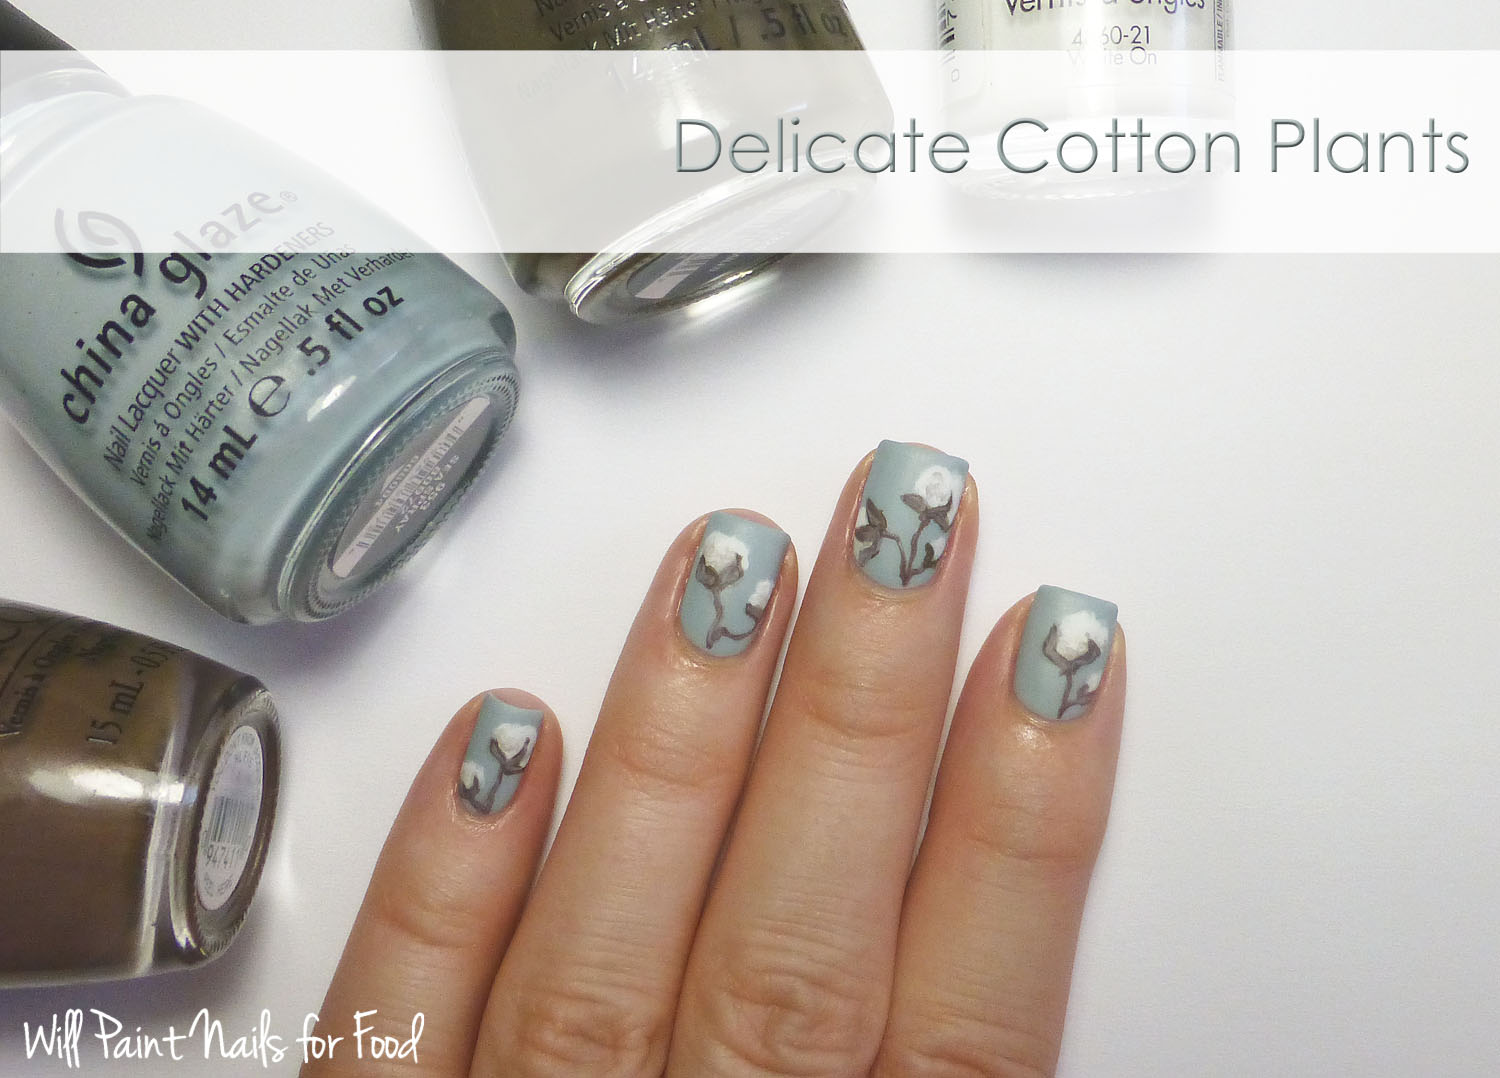 Delicate cotton plants nail art